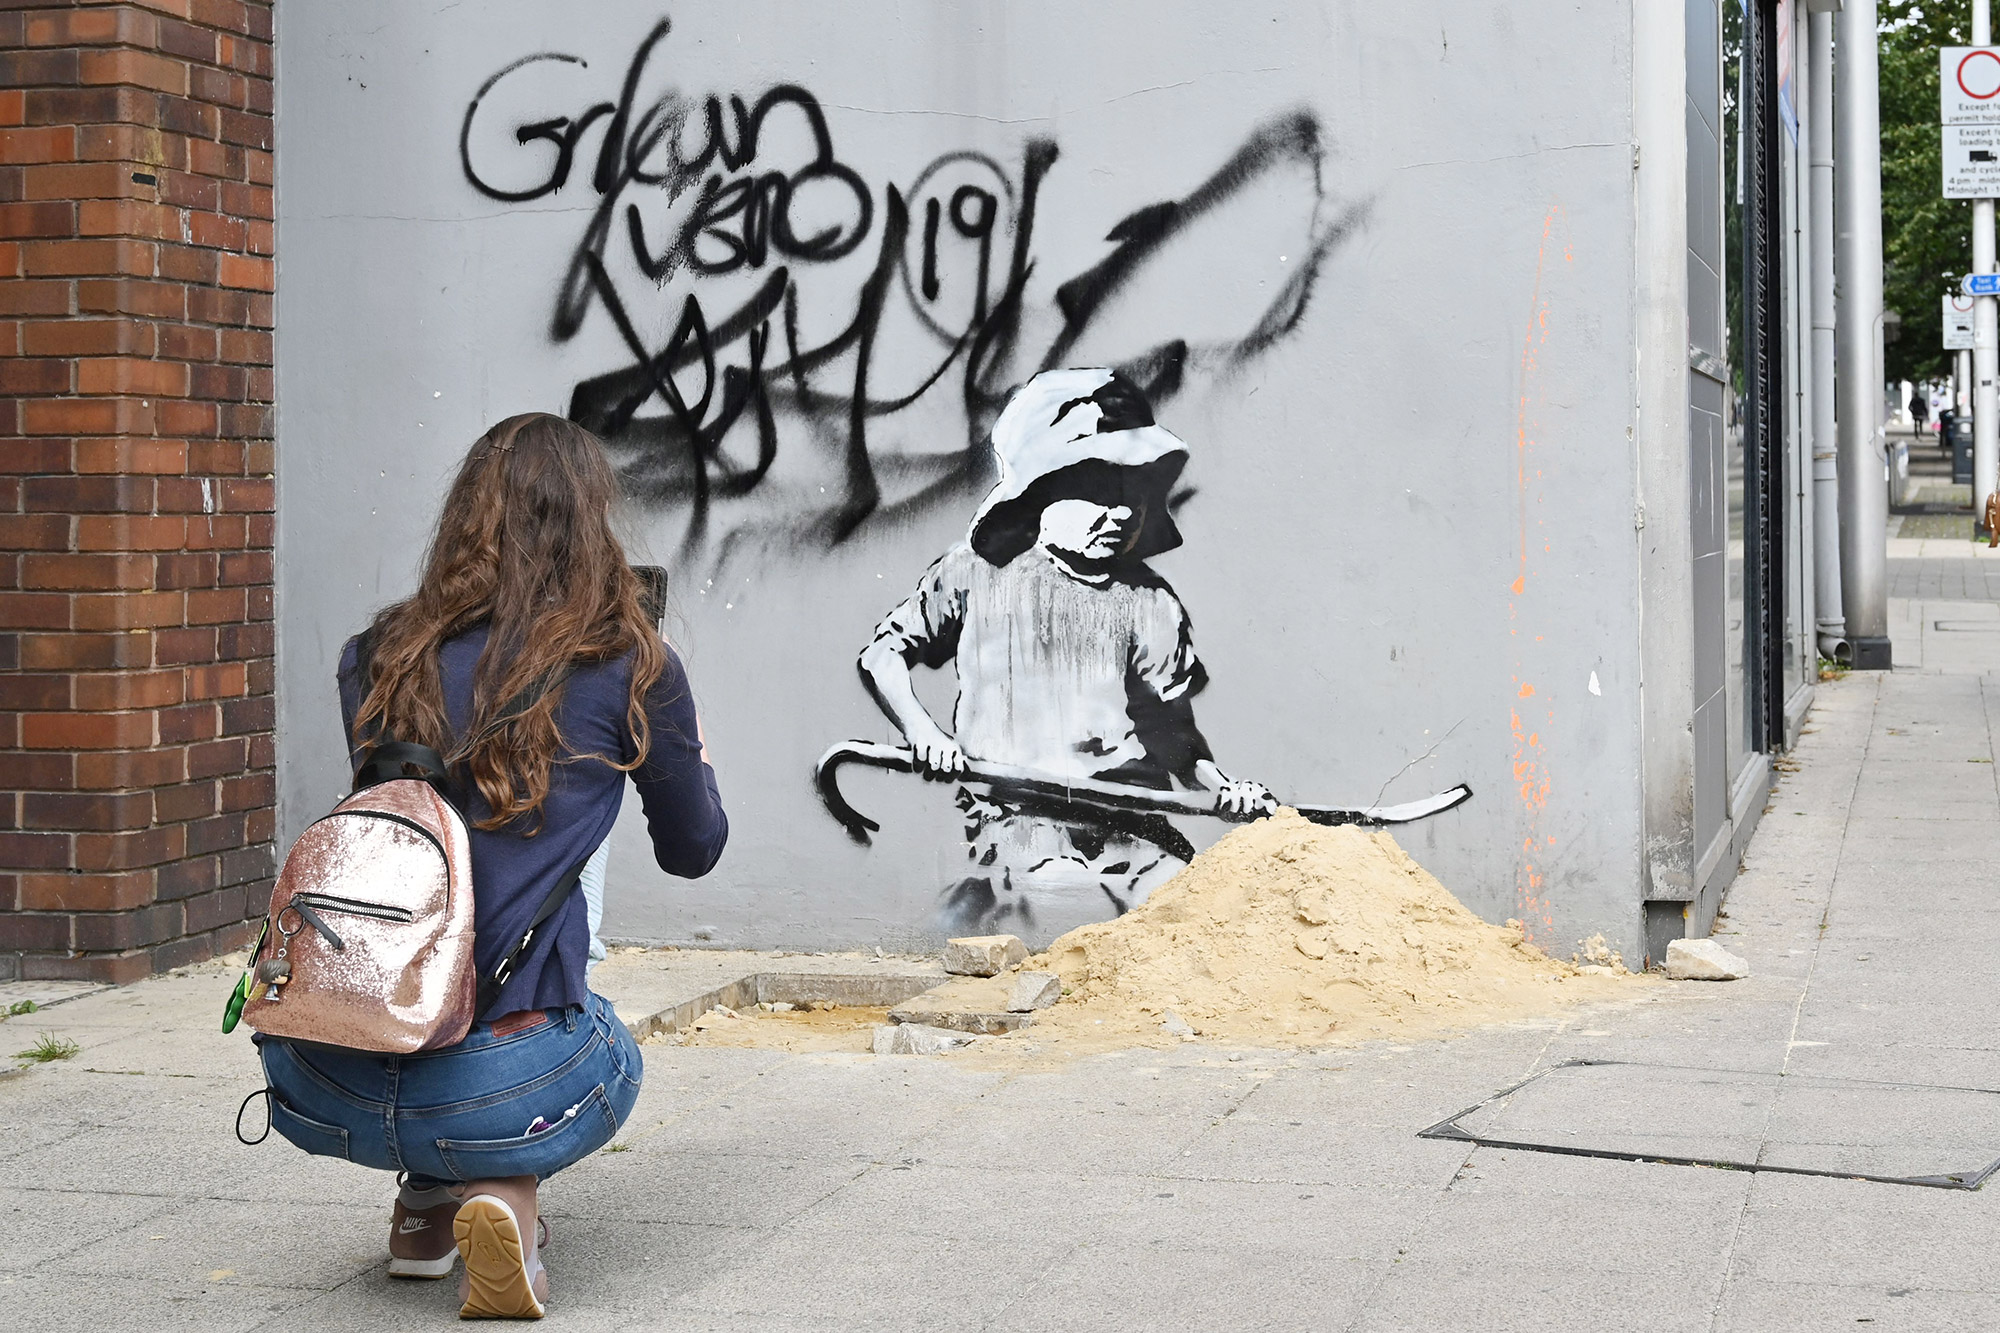 A woman takes a photograph of a stensil of a child digging in the sand, the subject of a graffiti artwork bearing the hallmarks of street artist Banksy on a wall in Lowestoft on the East coast of England on August 8, 2021.